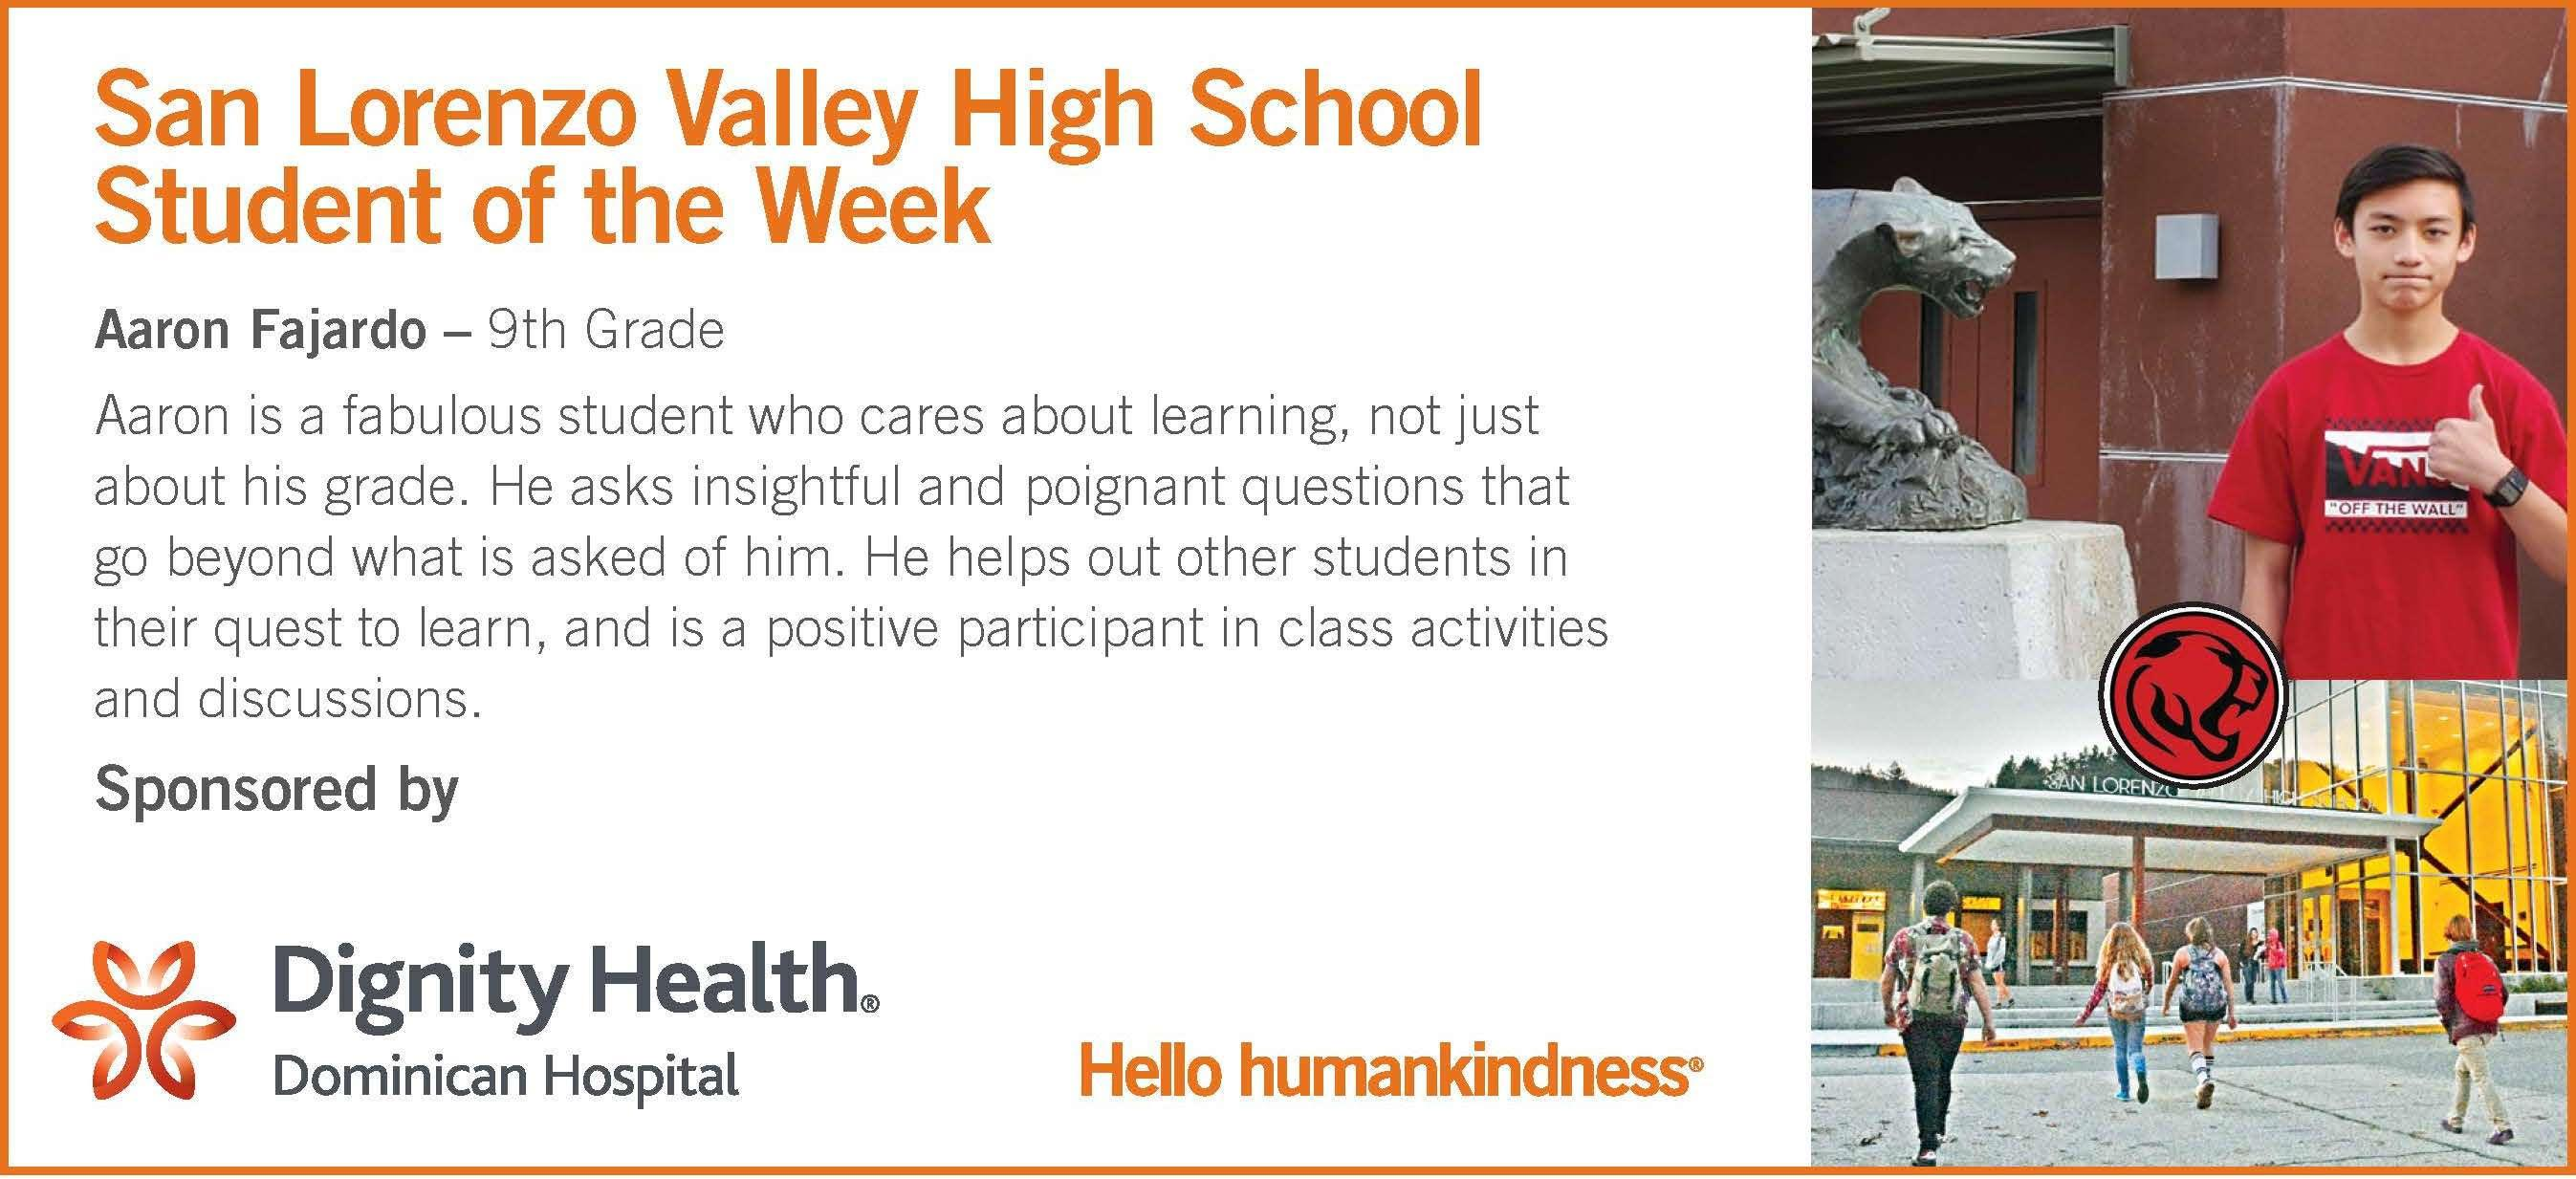 slvhs student of the week: aaron fajardo - 9th grade